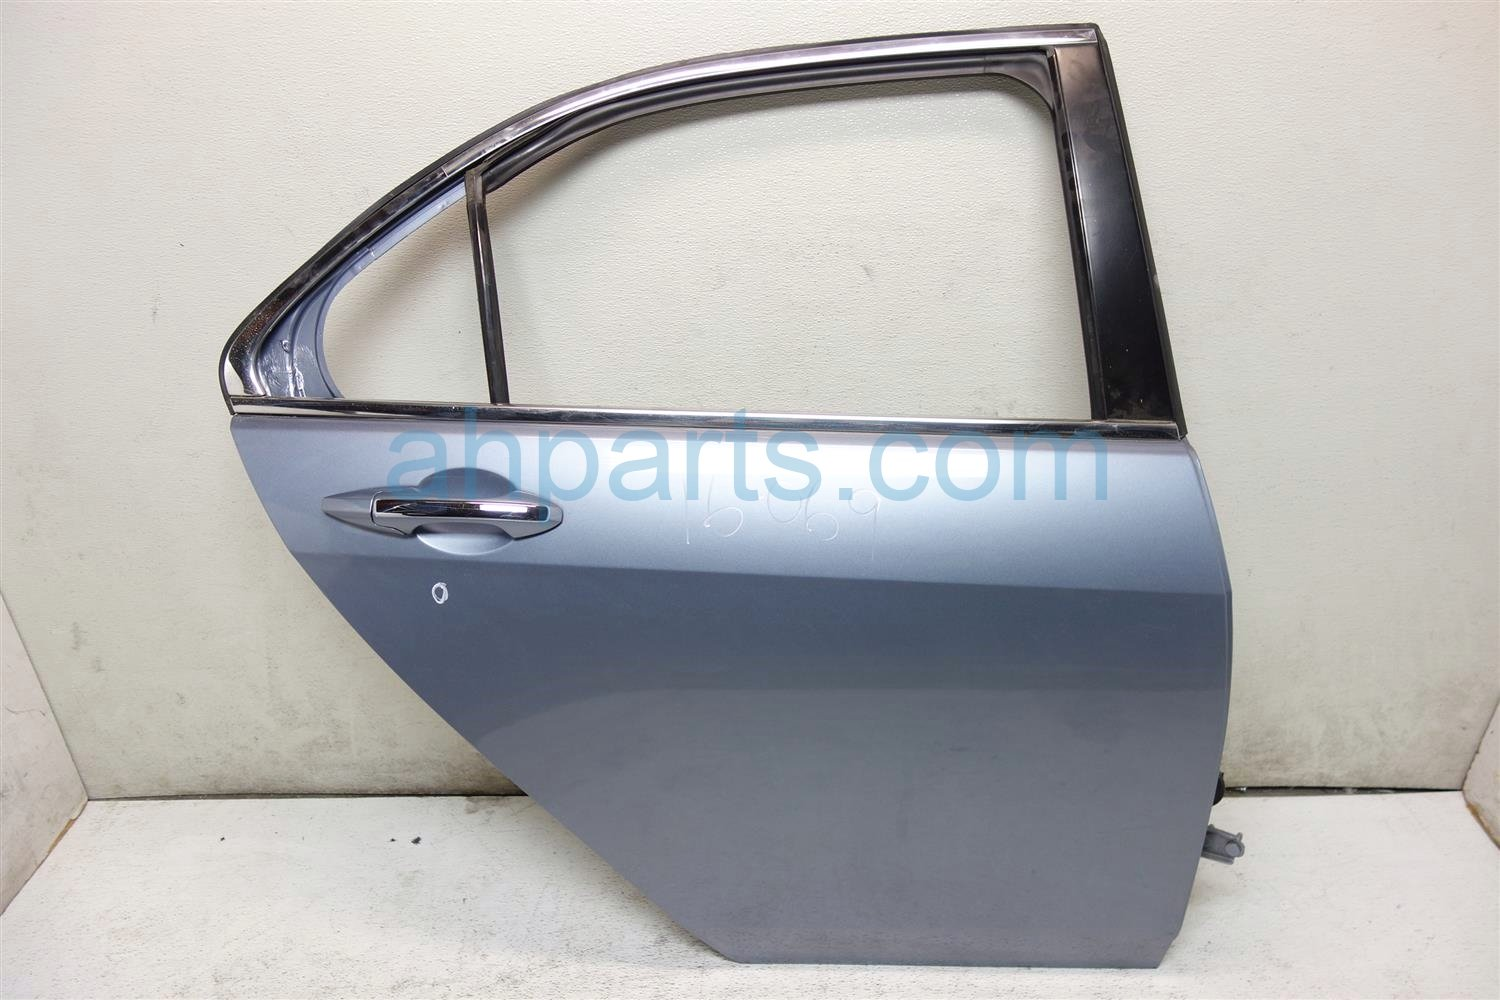 2006 Acura TSX Rear passenger DOOR SHELL LIGHT BLUE 1 DING 67510 SEC A90ZZ 67510SECA90ZZ Replacement